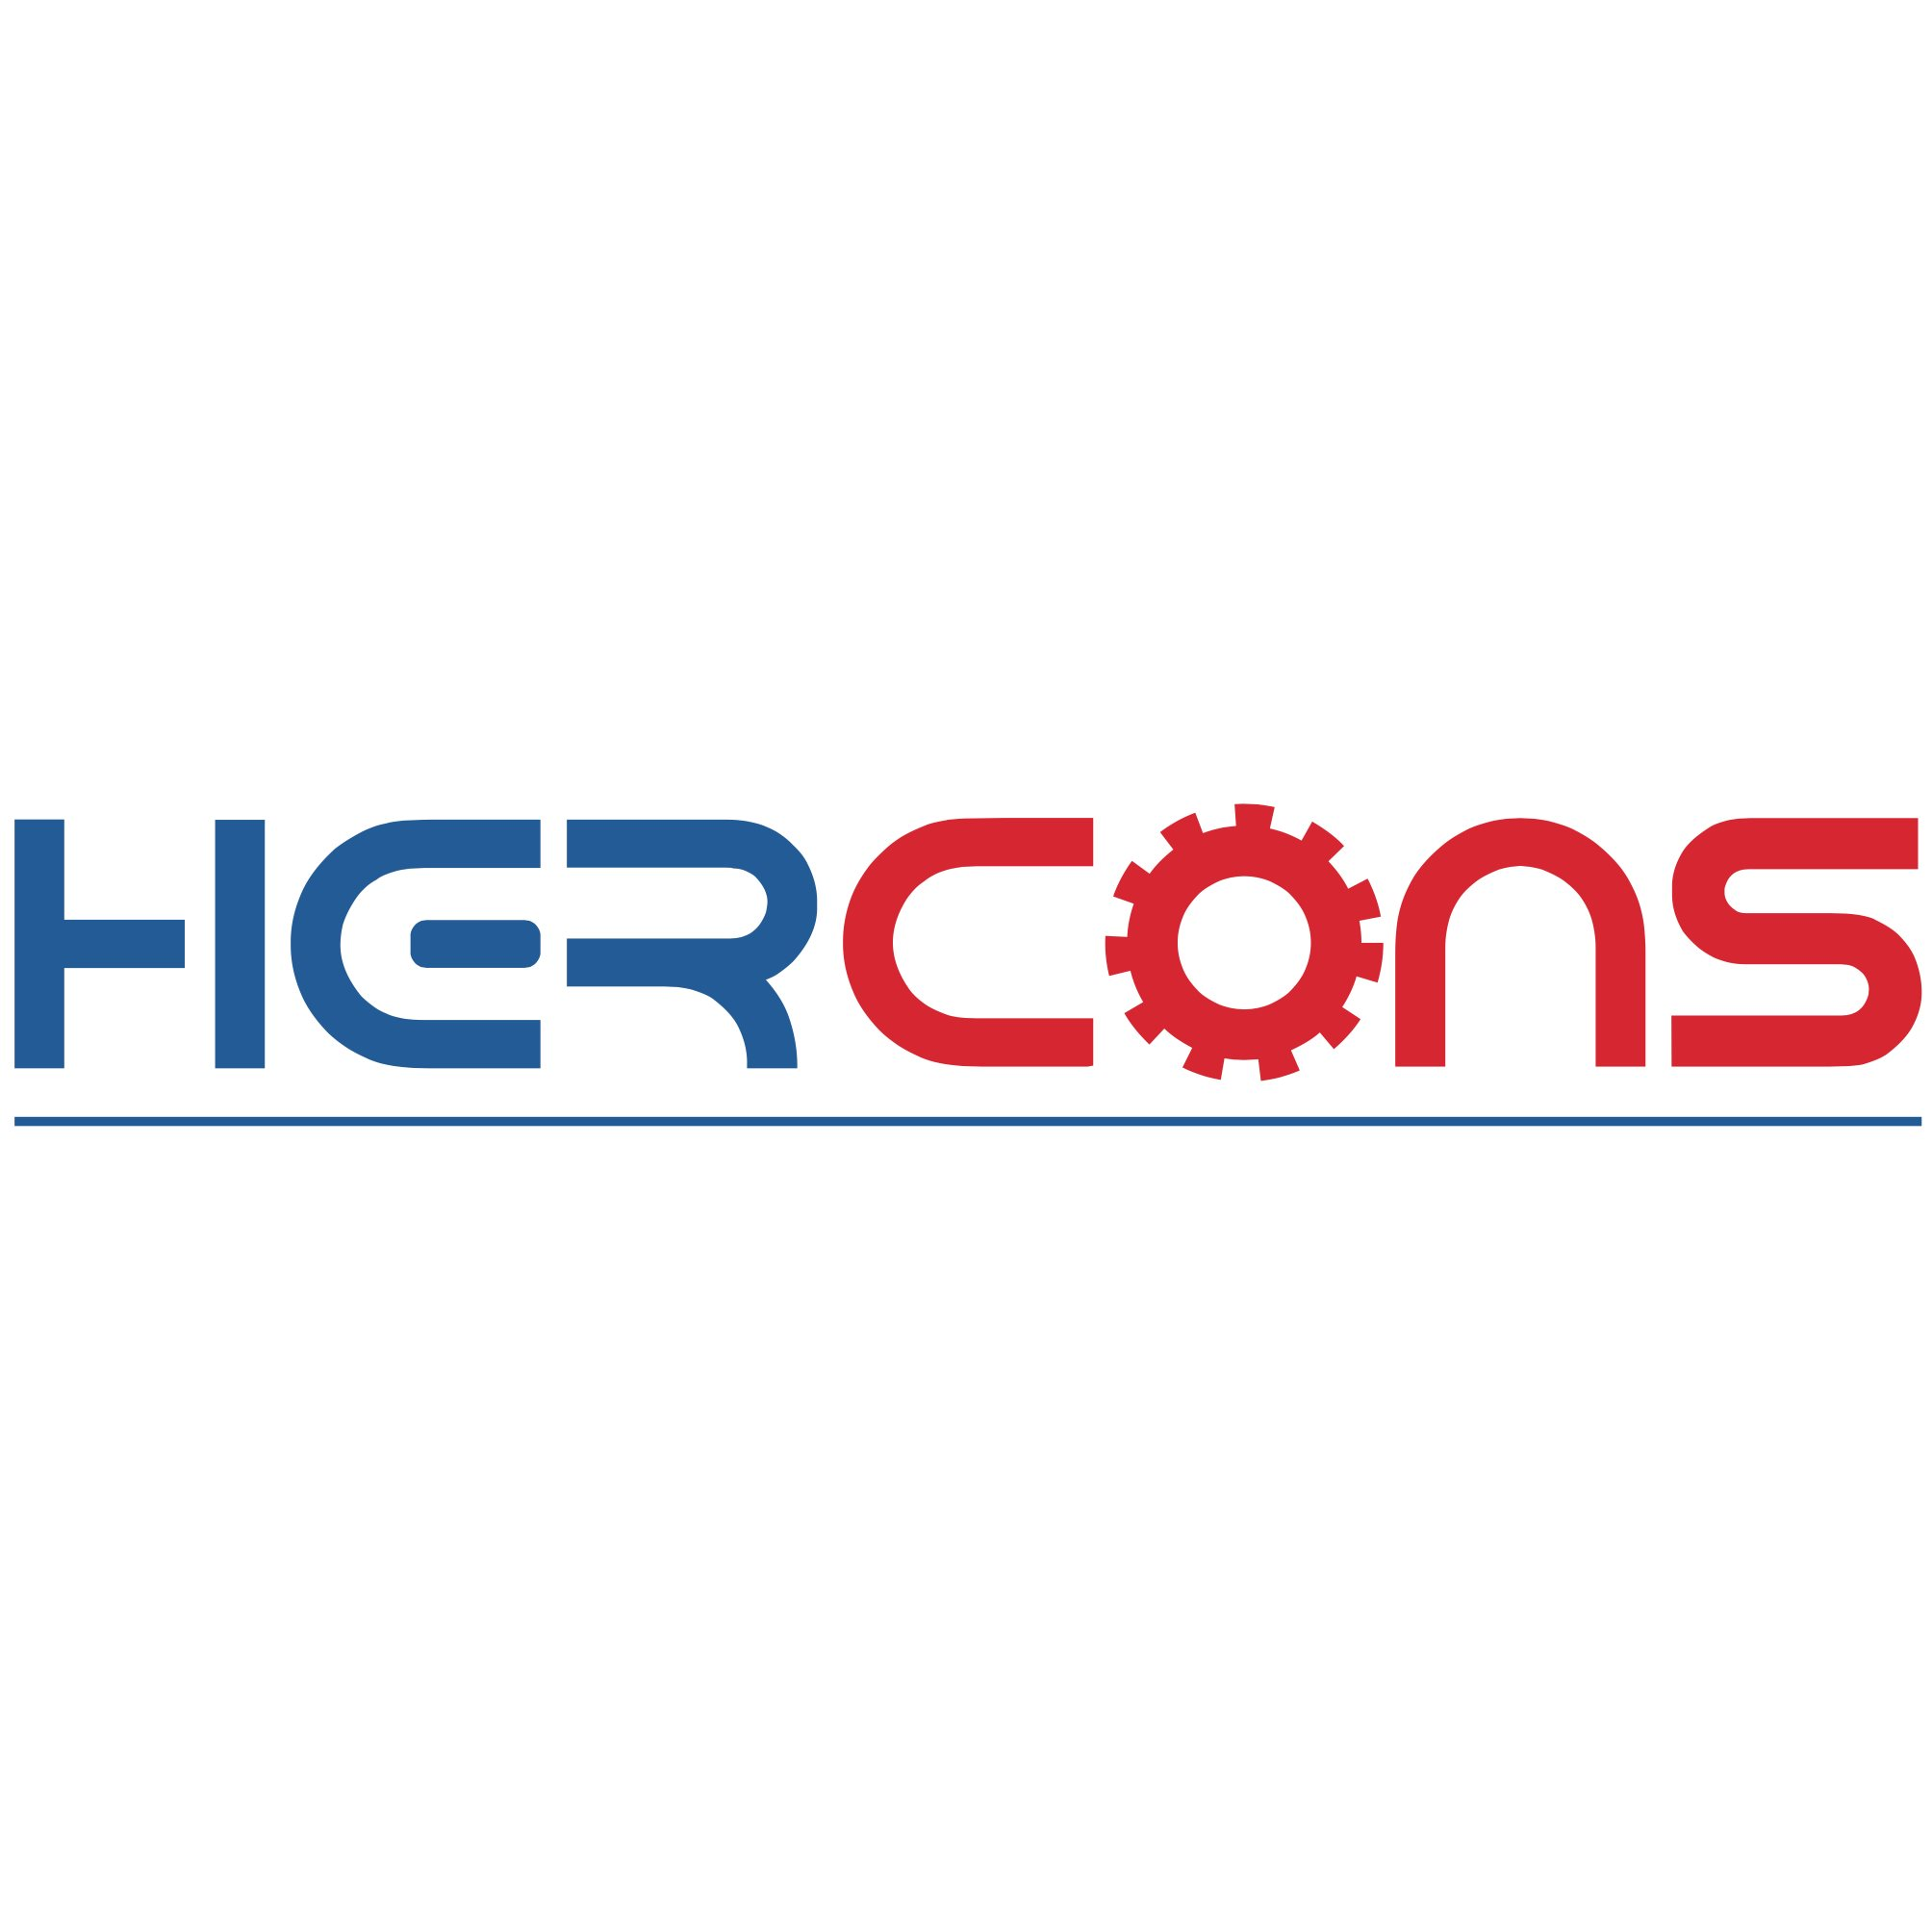 Hercons Services S.A.C.